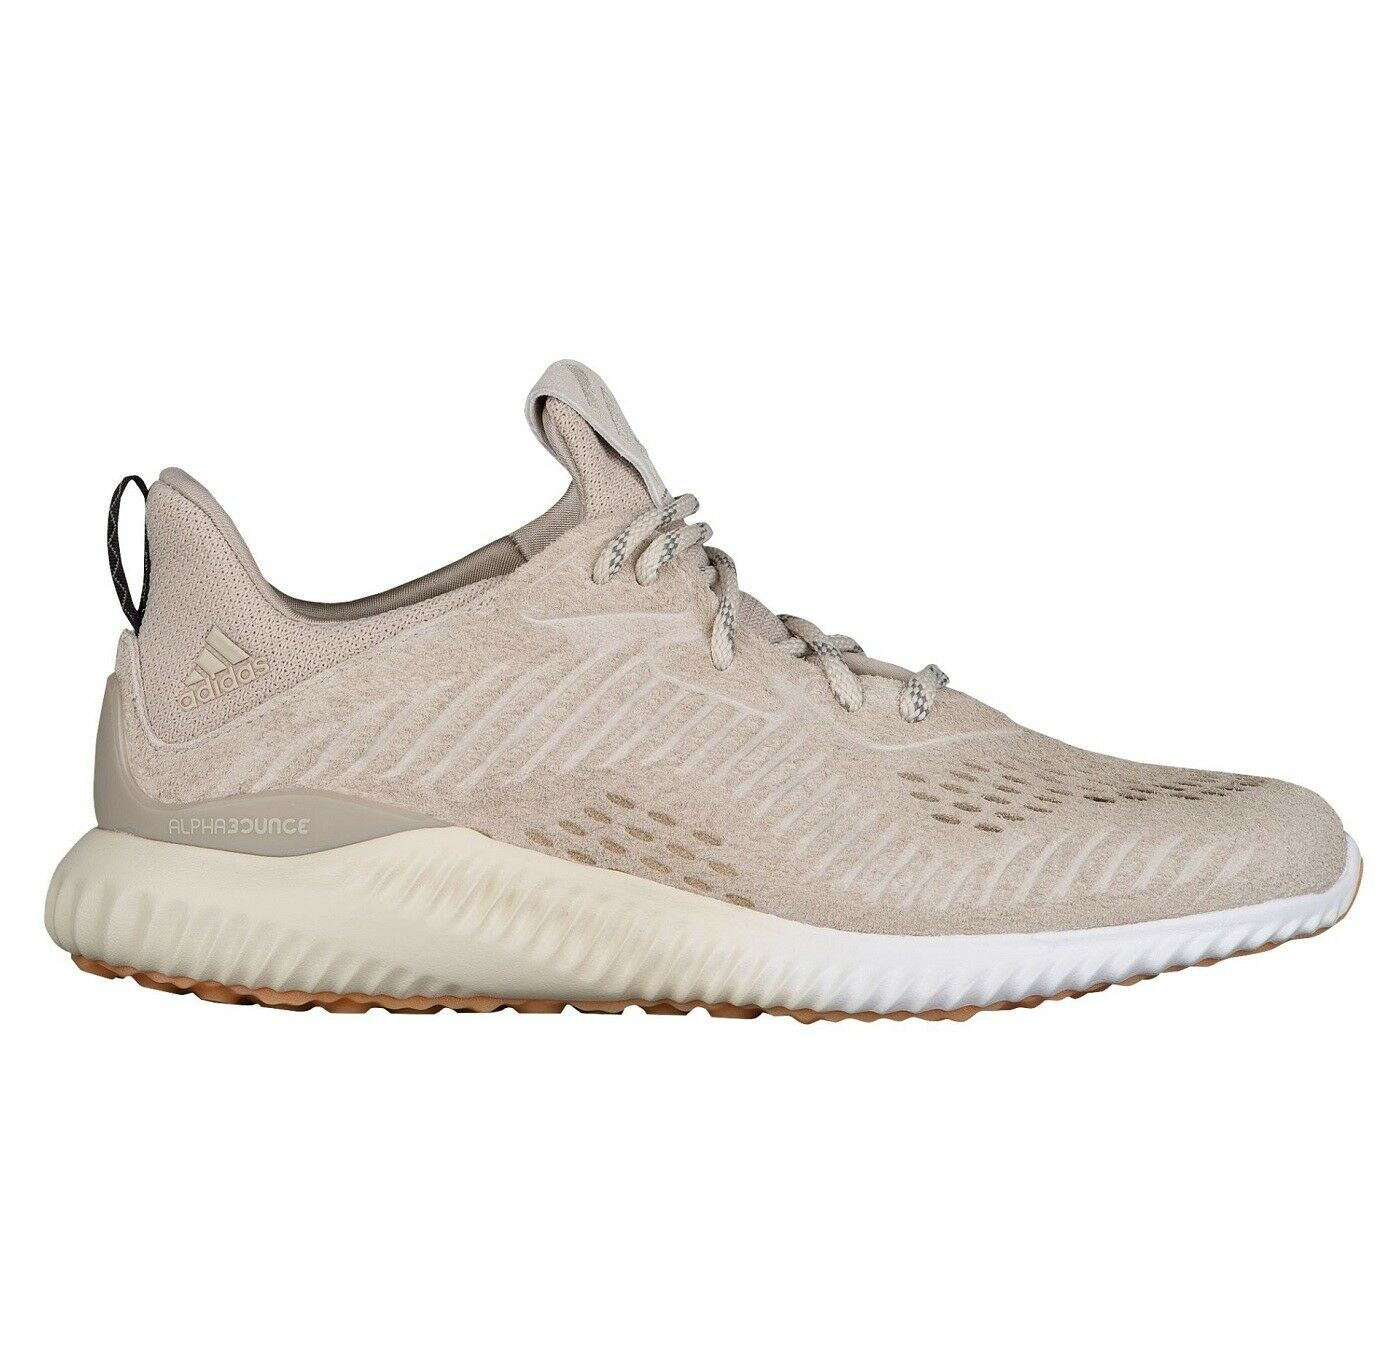 Adidas Alphabounce Lea Mens BY3122 Clear Light Brown Running Shoes Comfortable